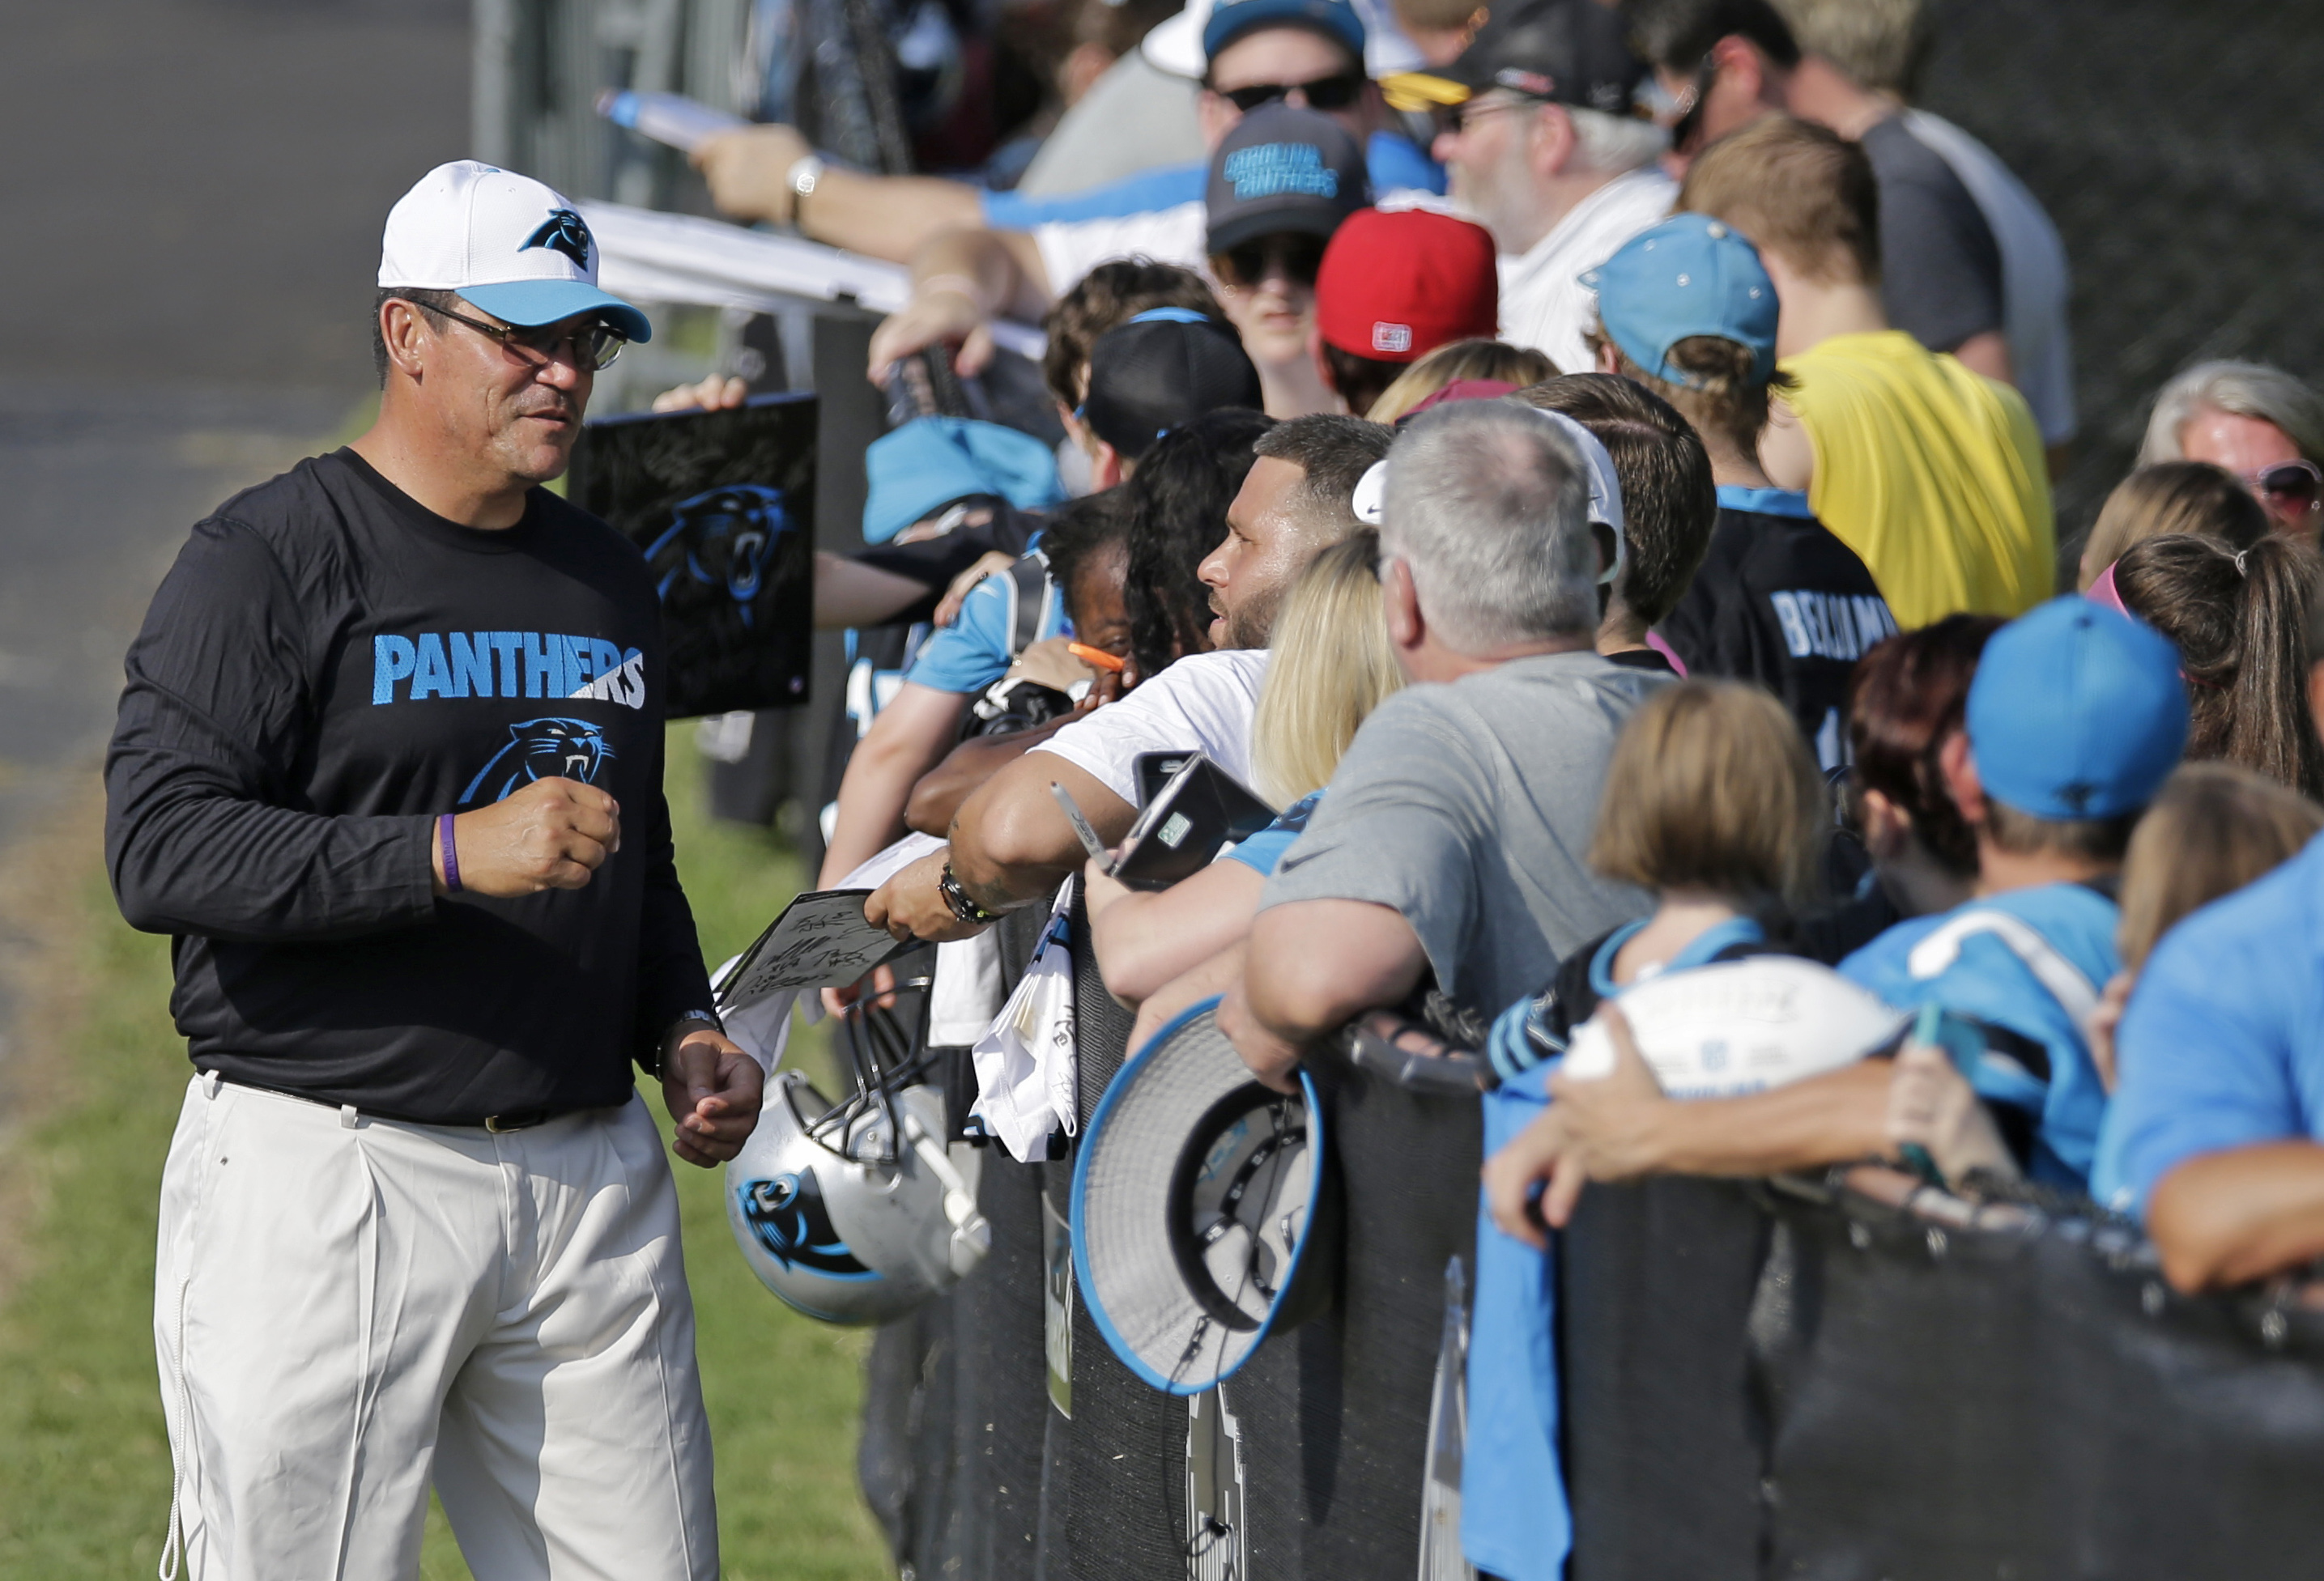 Carolina Panthers head coach Ron Rivera, left, signs autographs for fans as he arrives for the NFL football team's training camp in Spartanburg, S.C., Monday, Aug. 3, 2015. (AP Photo/Chuck Burton)